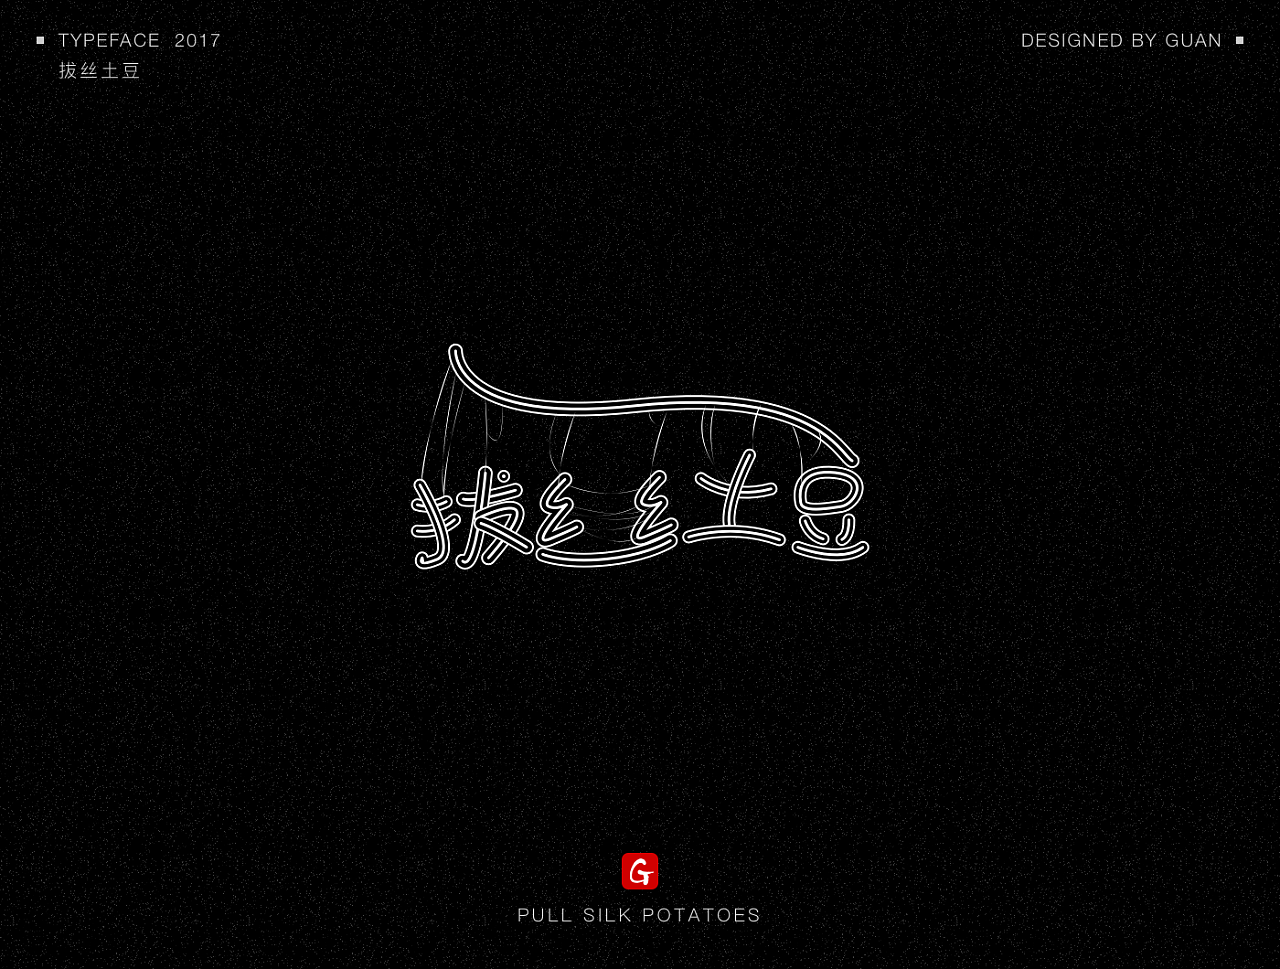 chinesefontdesign.com 2017 09 19 10 54 20 501920 20P Super fashionable Chinese font style design